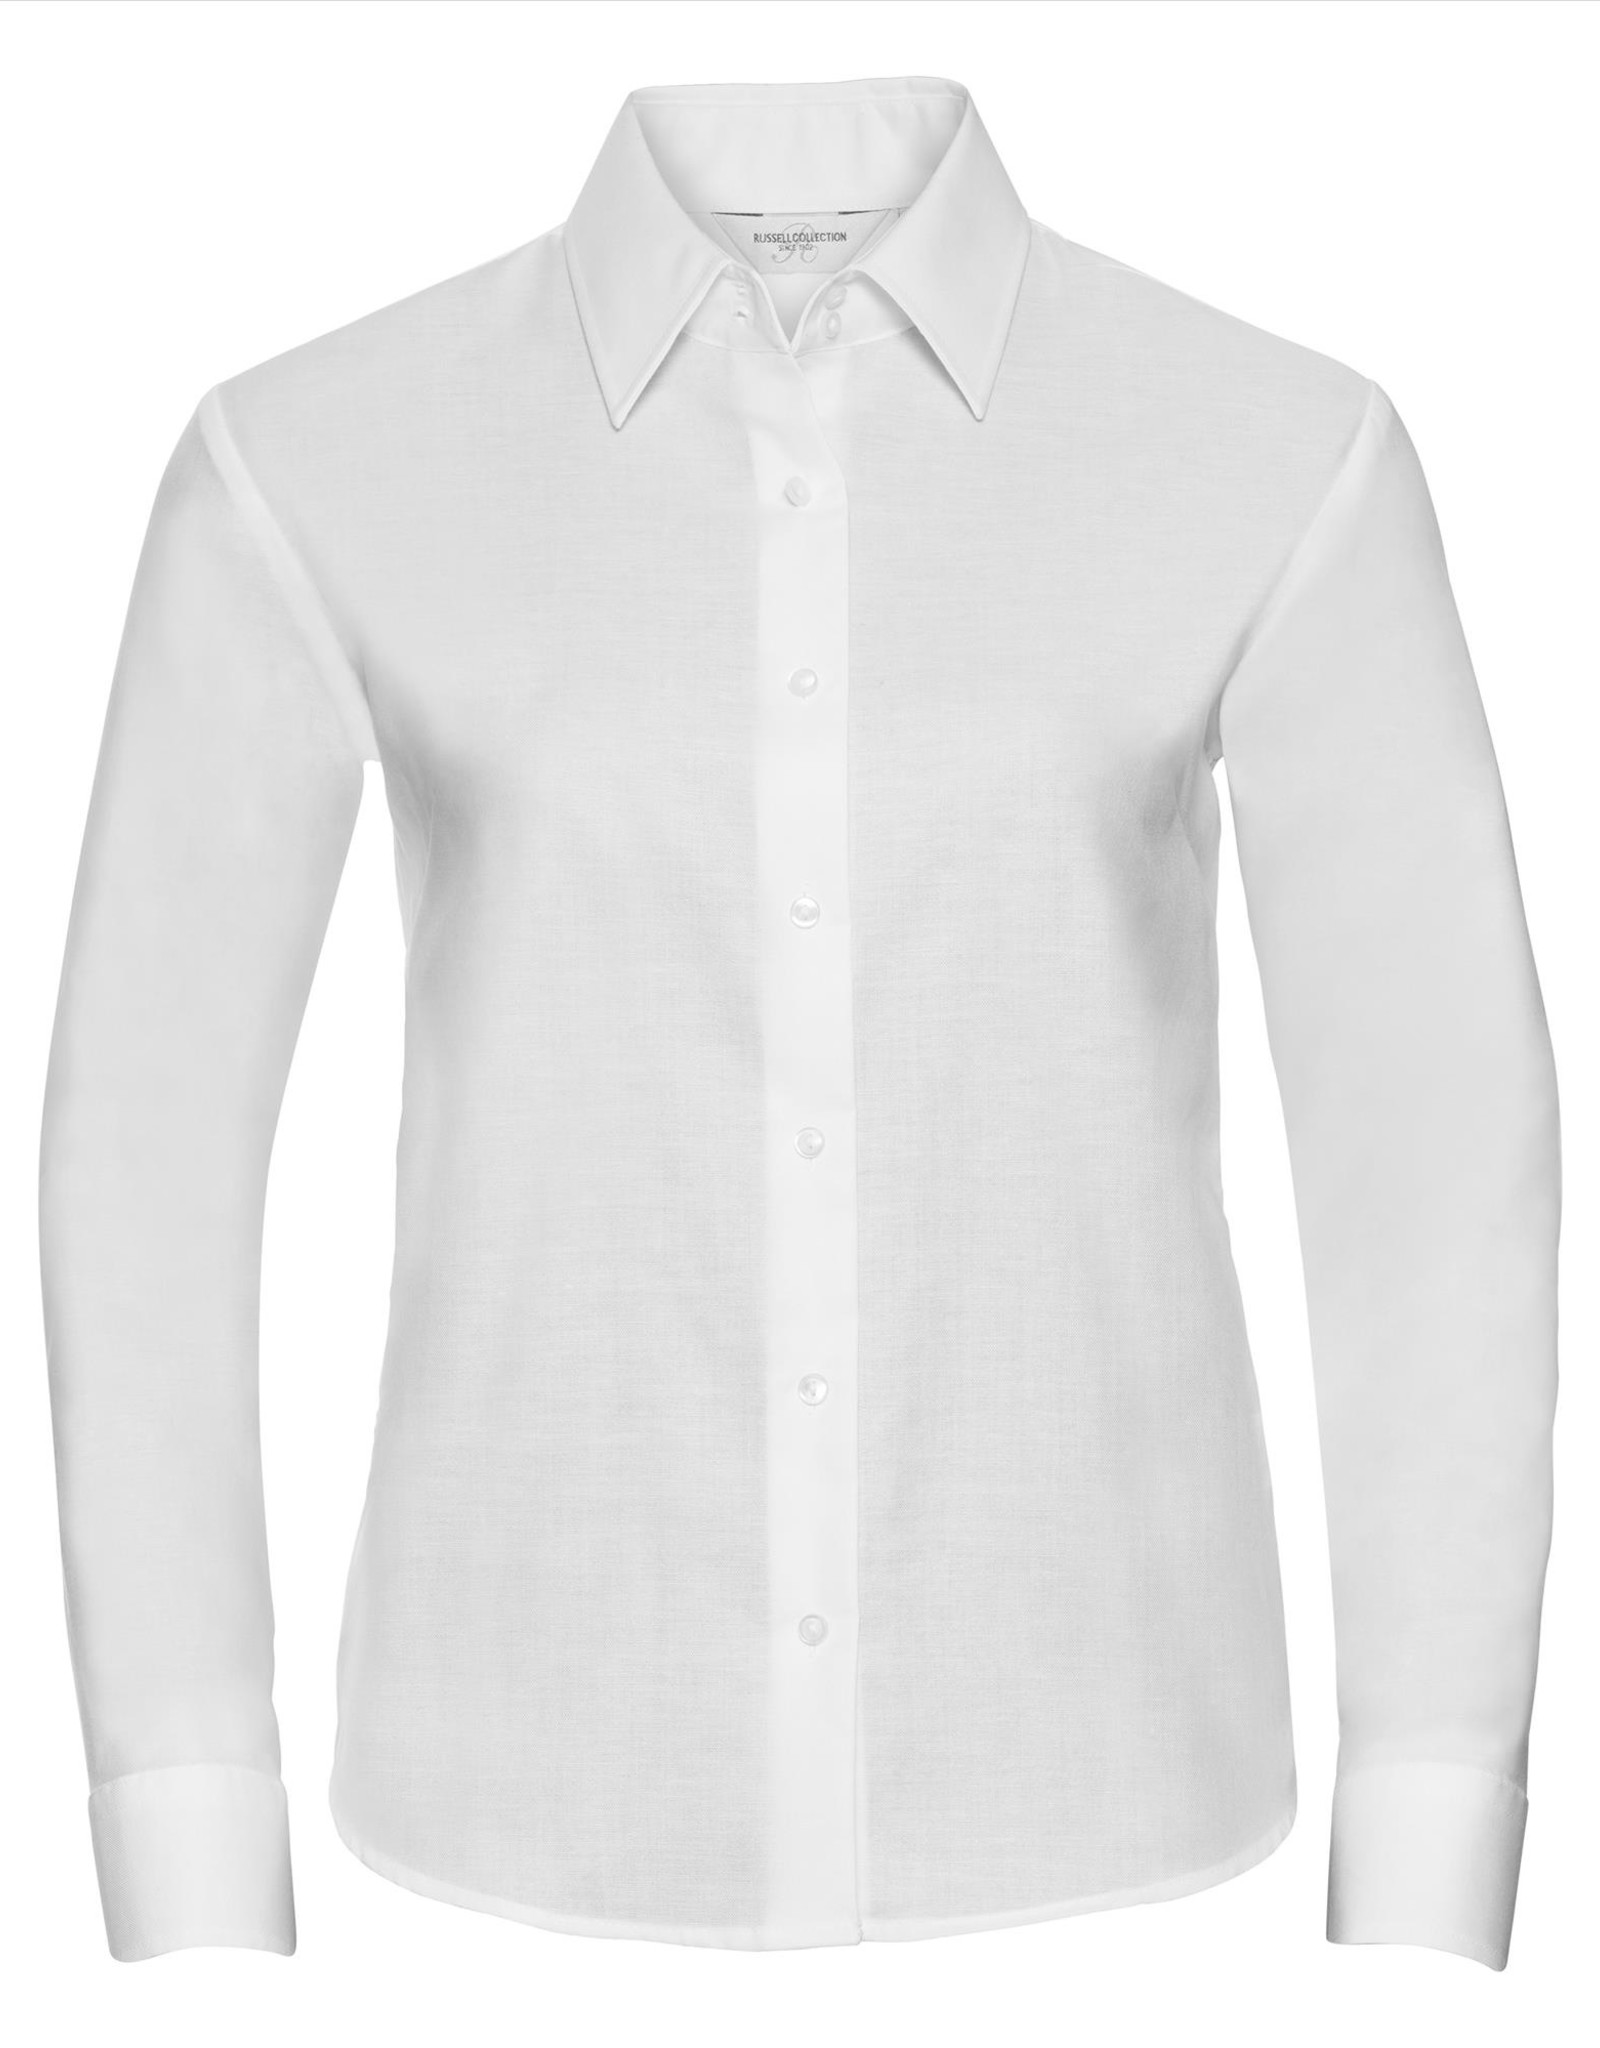 Russell BLOUSE Classic Oxford lange mouw wit